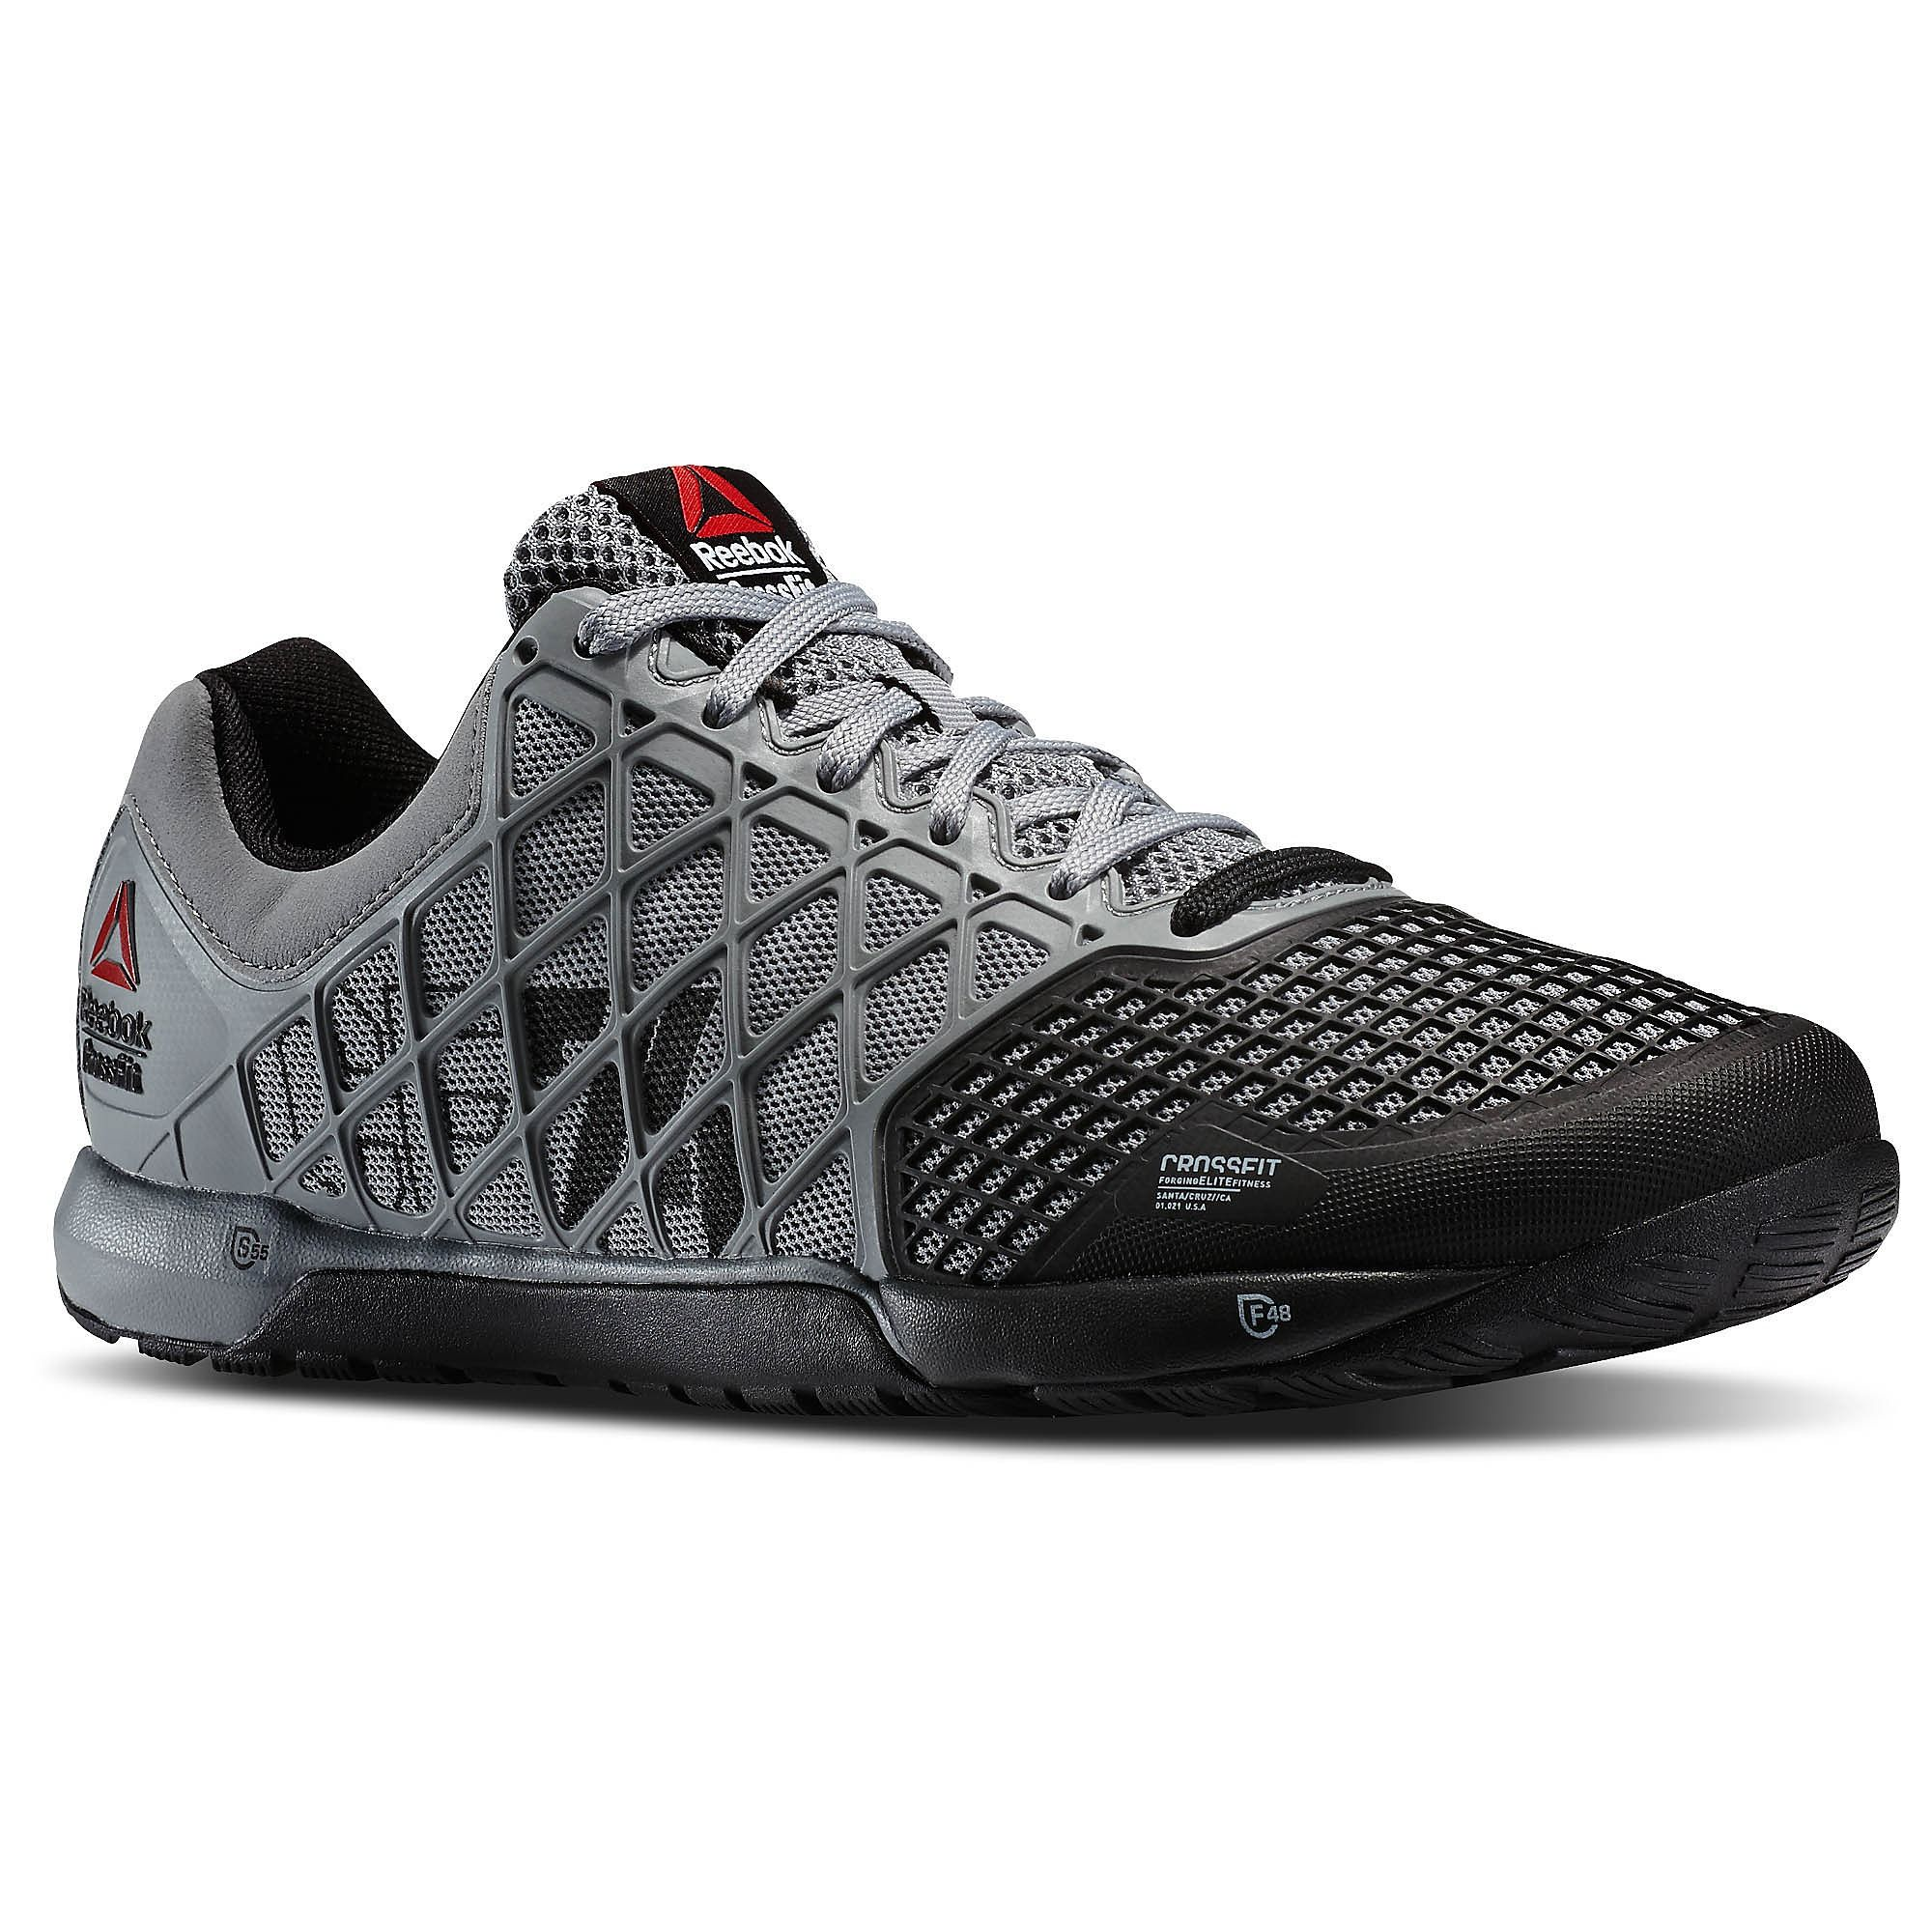 Performance, durability and comfort are packed into the